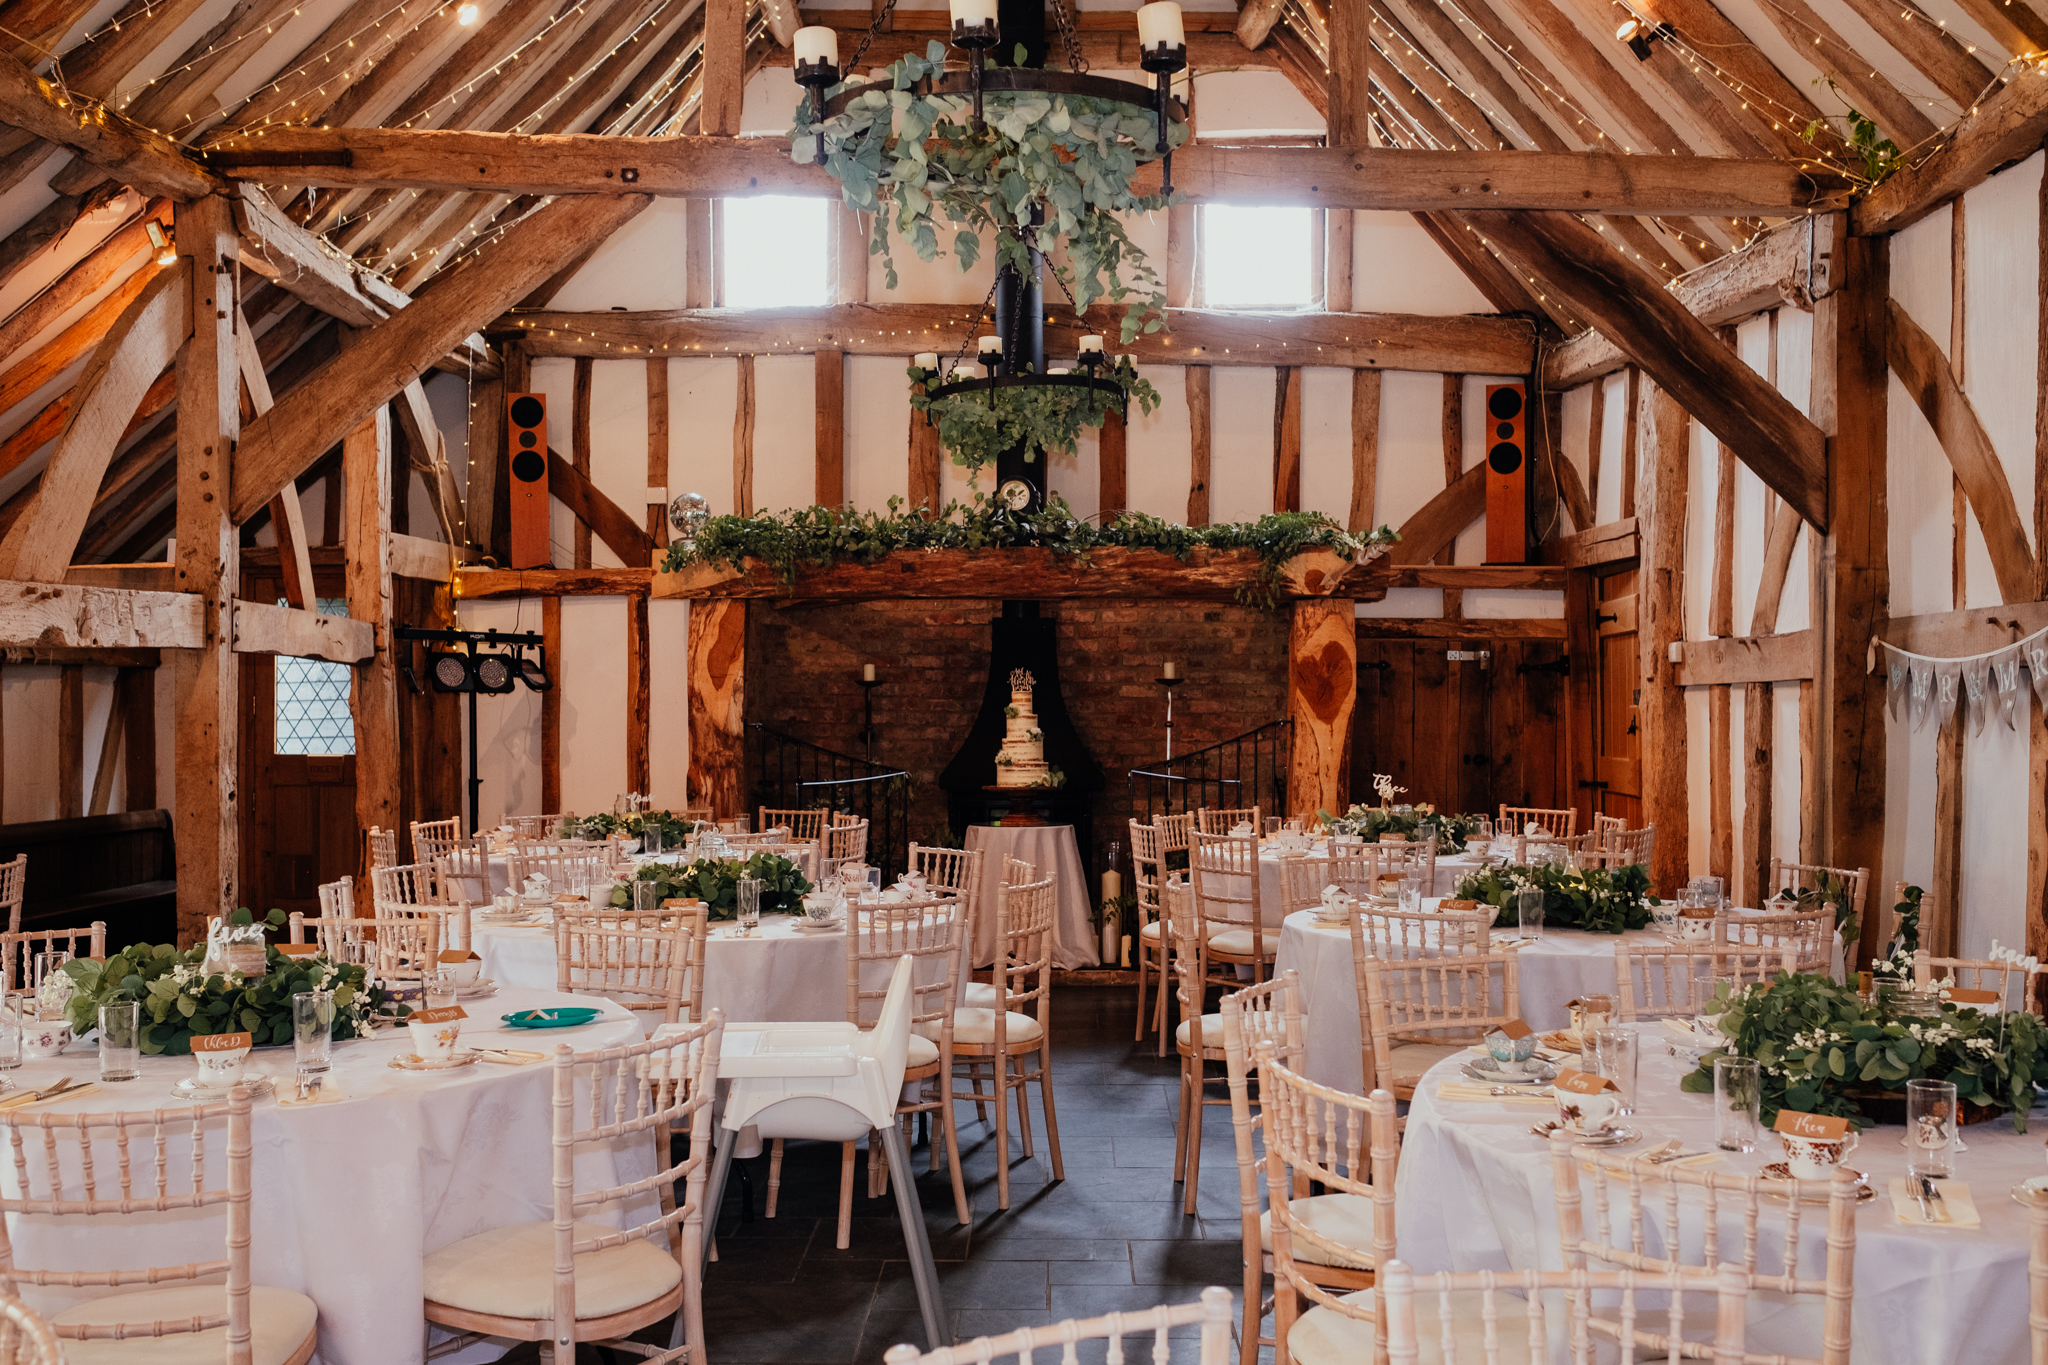 Rumbolds Farm wedding barn